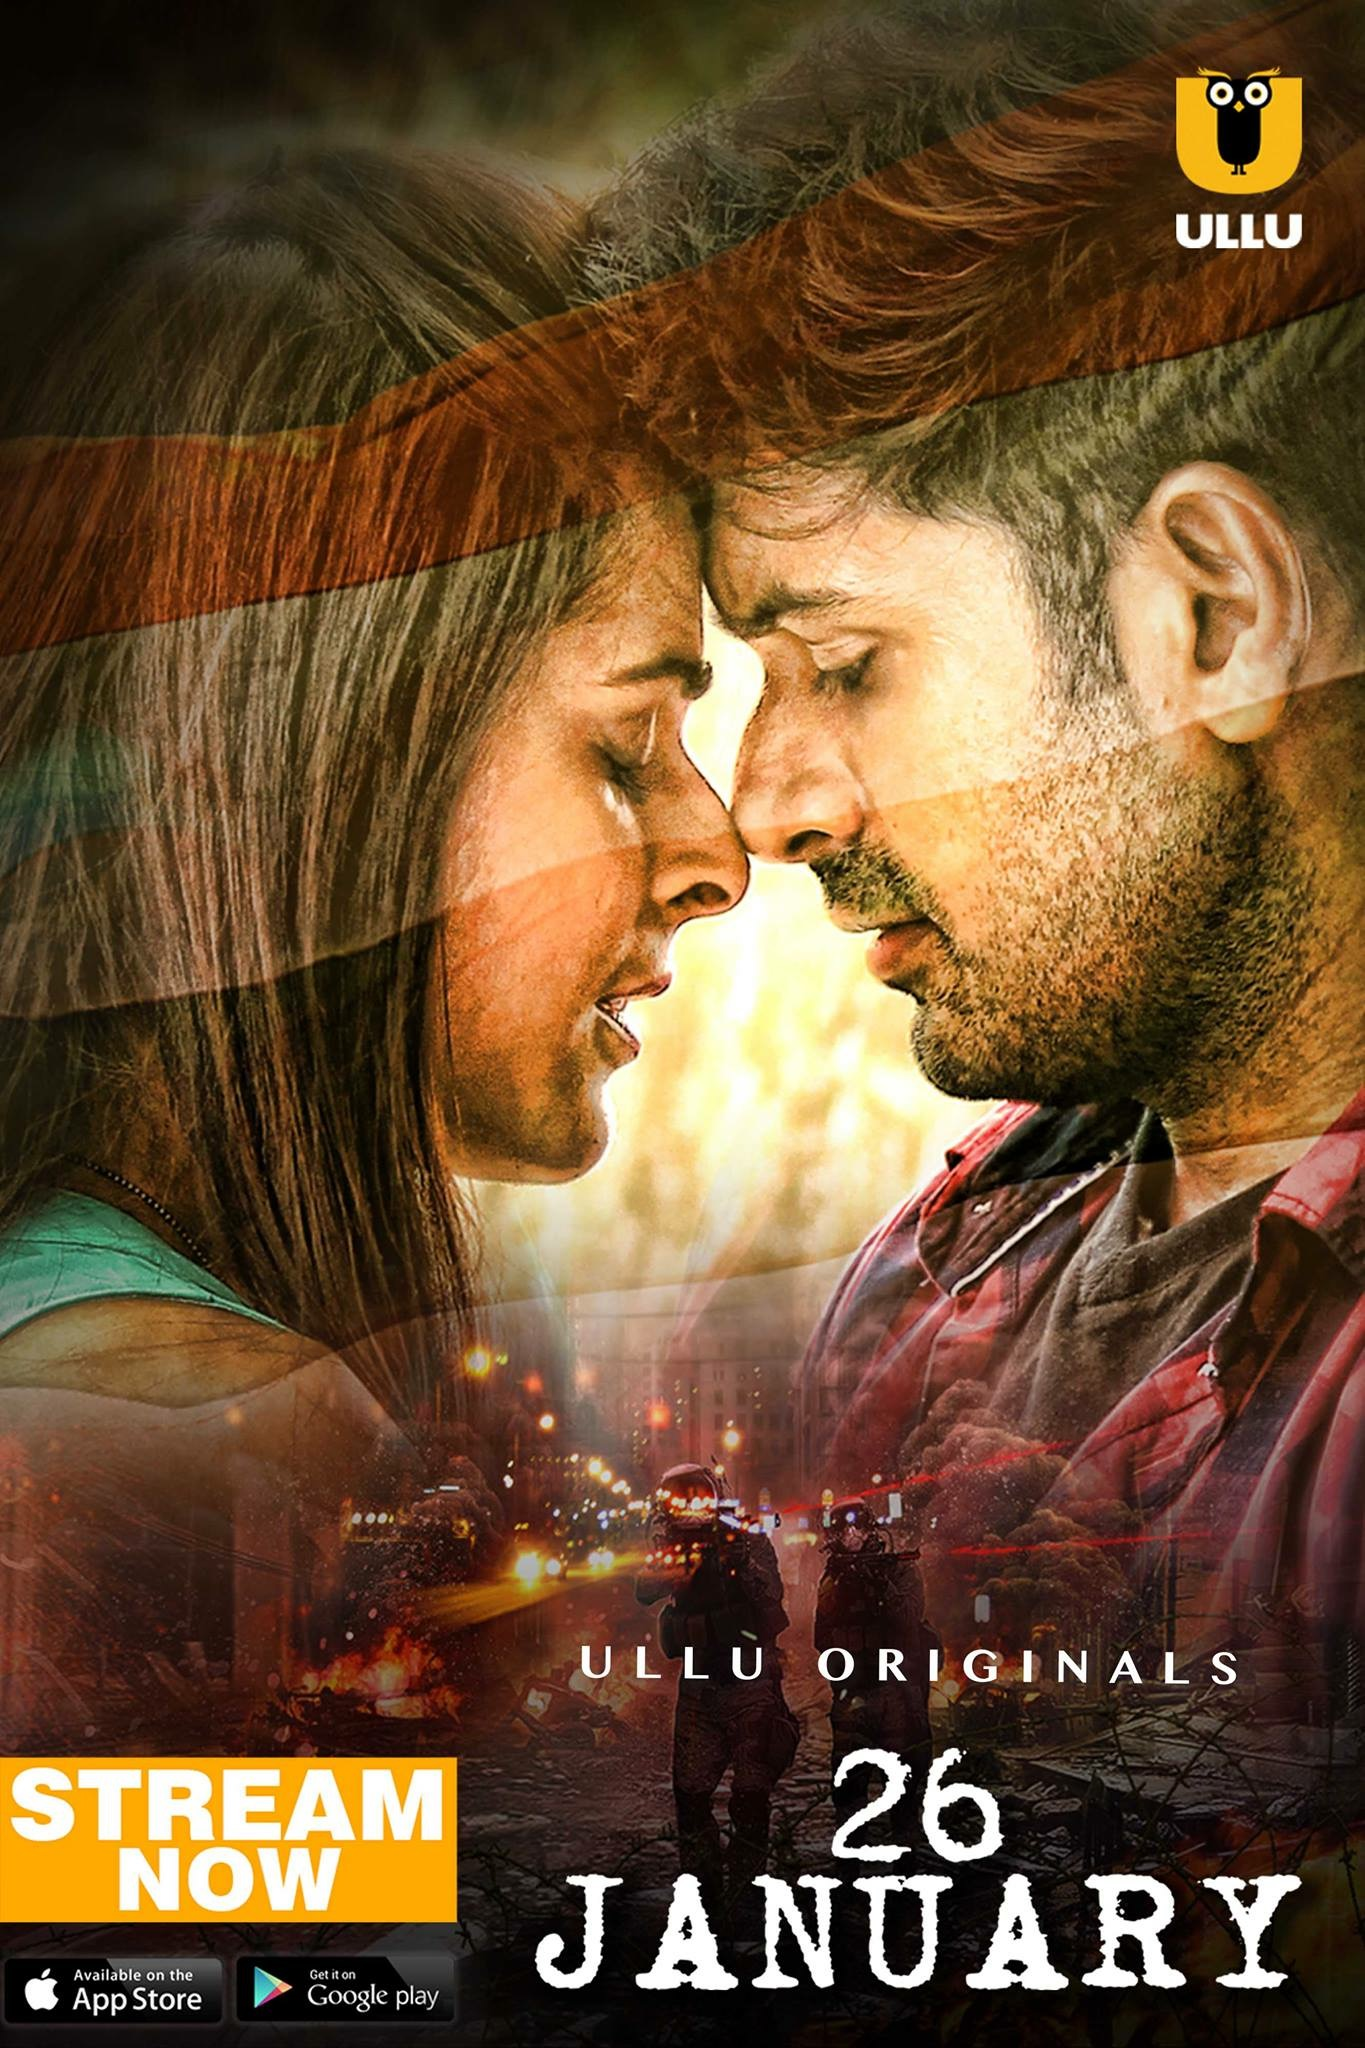 18+ 26 January (2021) S01 Hindi Ullu Originals Complete Web Series 720p HDRip 600MB Download